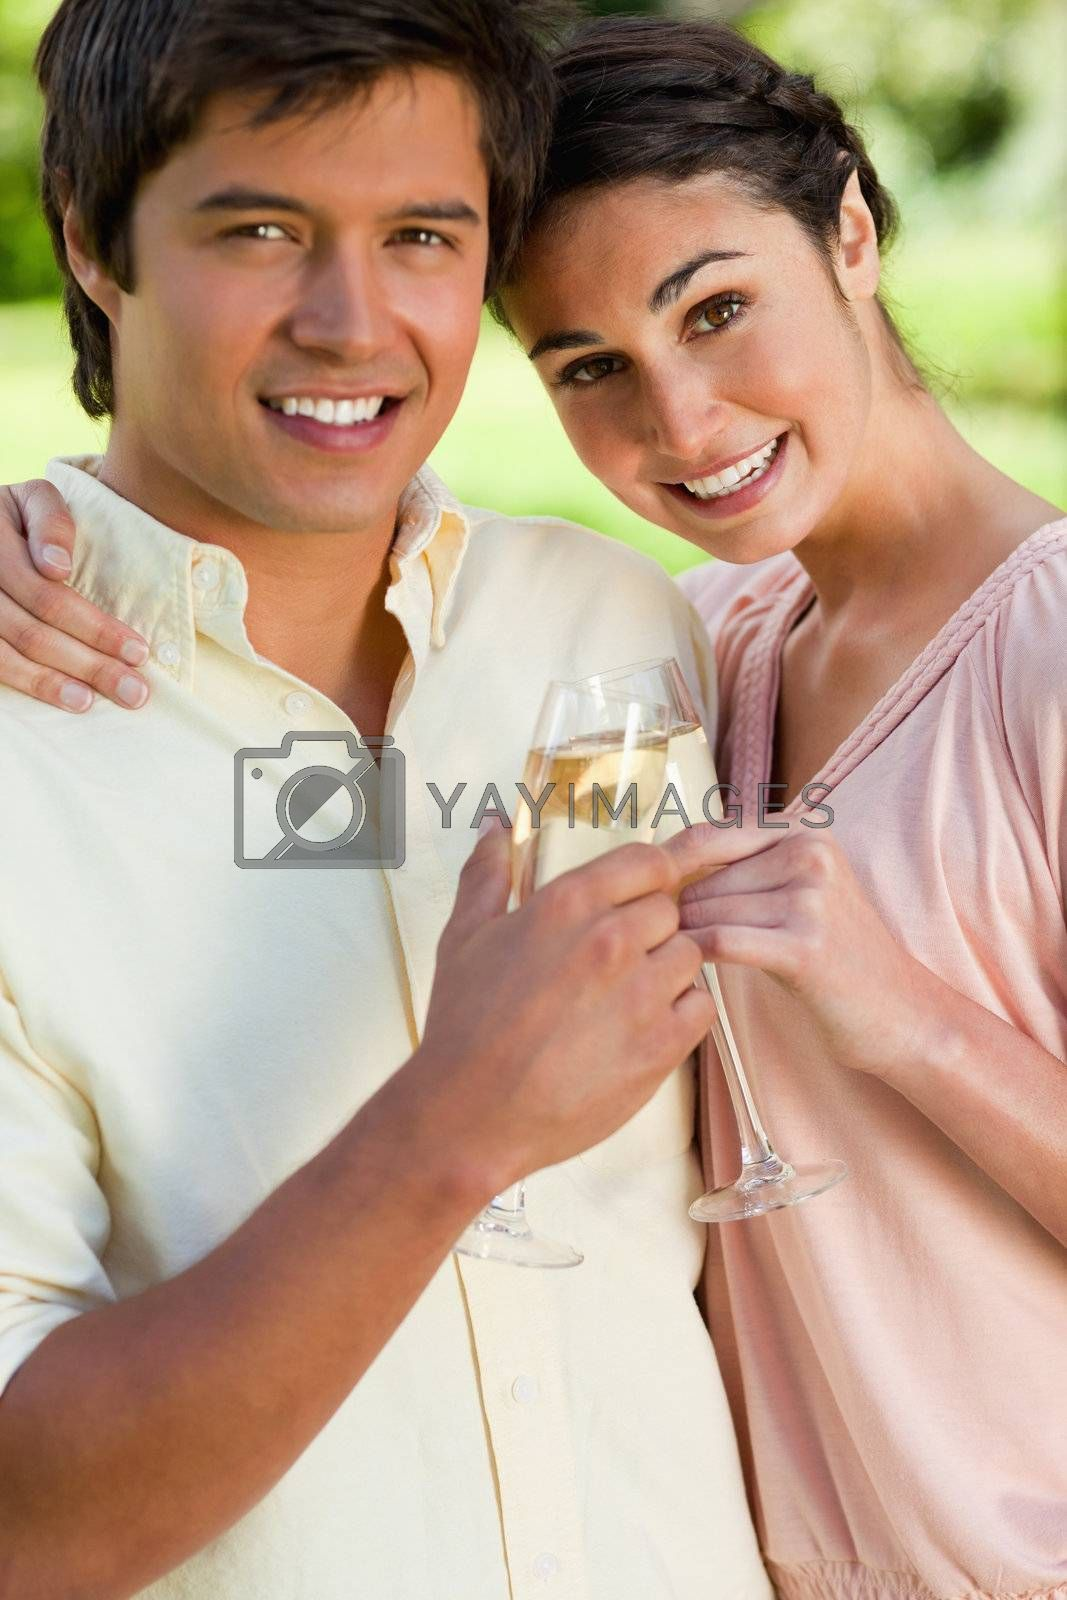 Woman smiling and leaning against her smiling friend while touching glasses of champagne in celebration